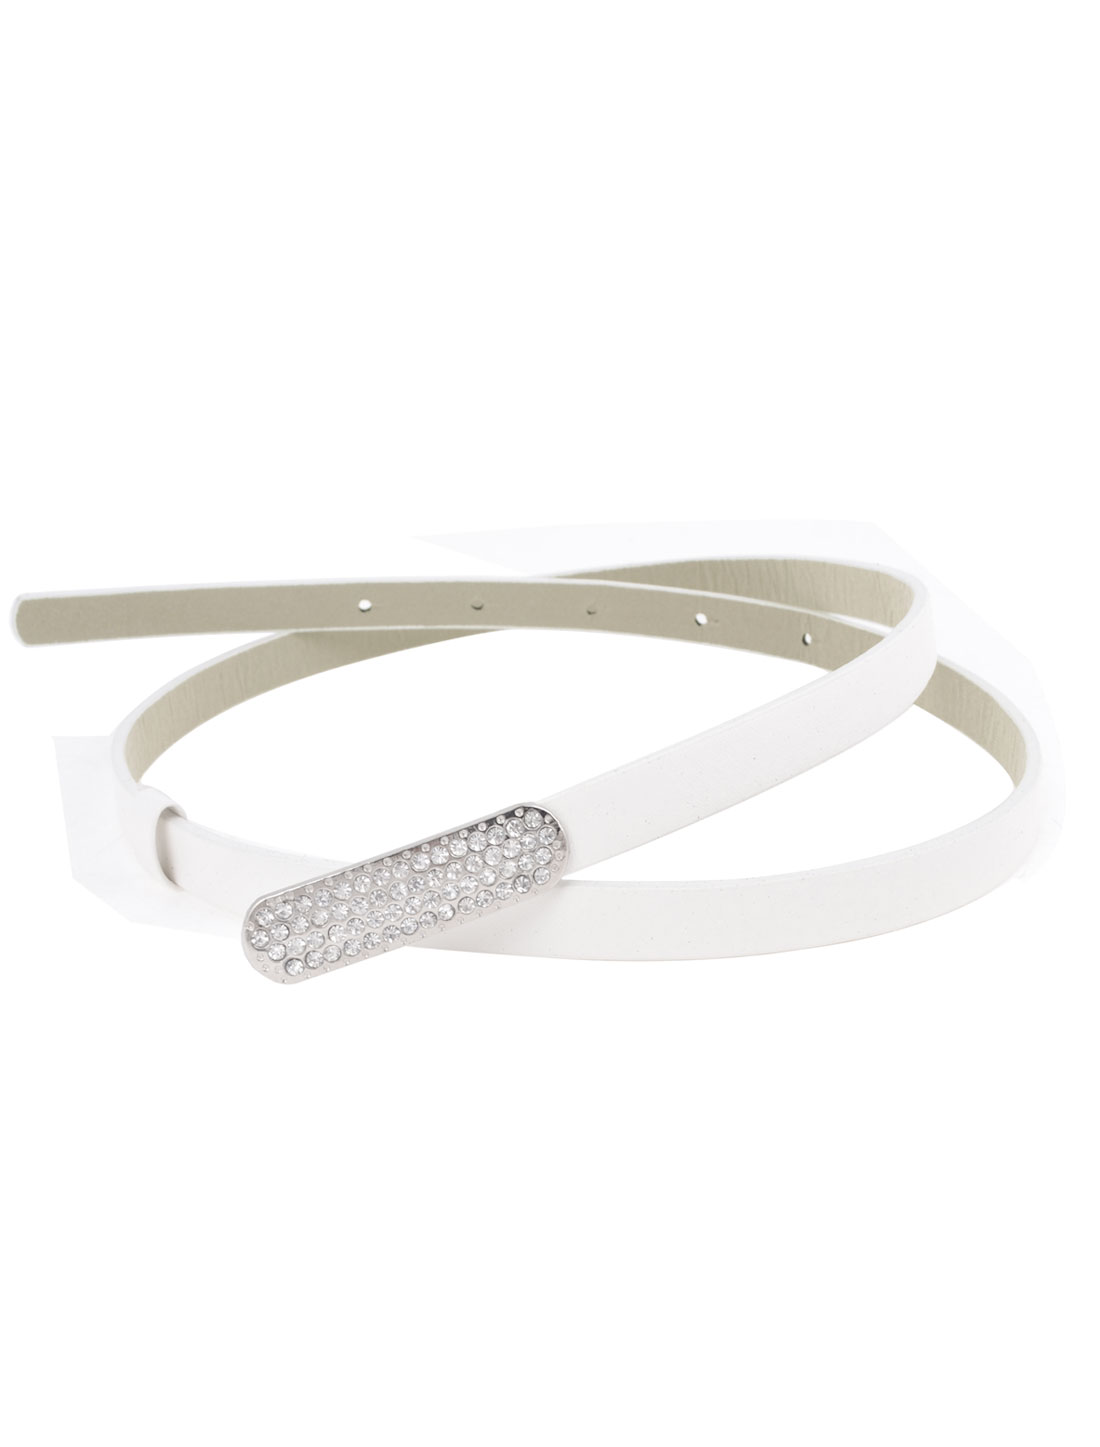 Lady Metal Press Stud Buckle Faux Leather Band Slim Waist Belt White